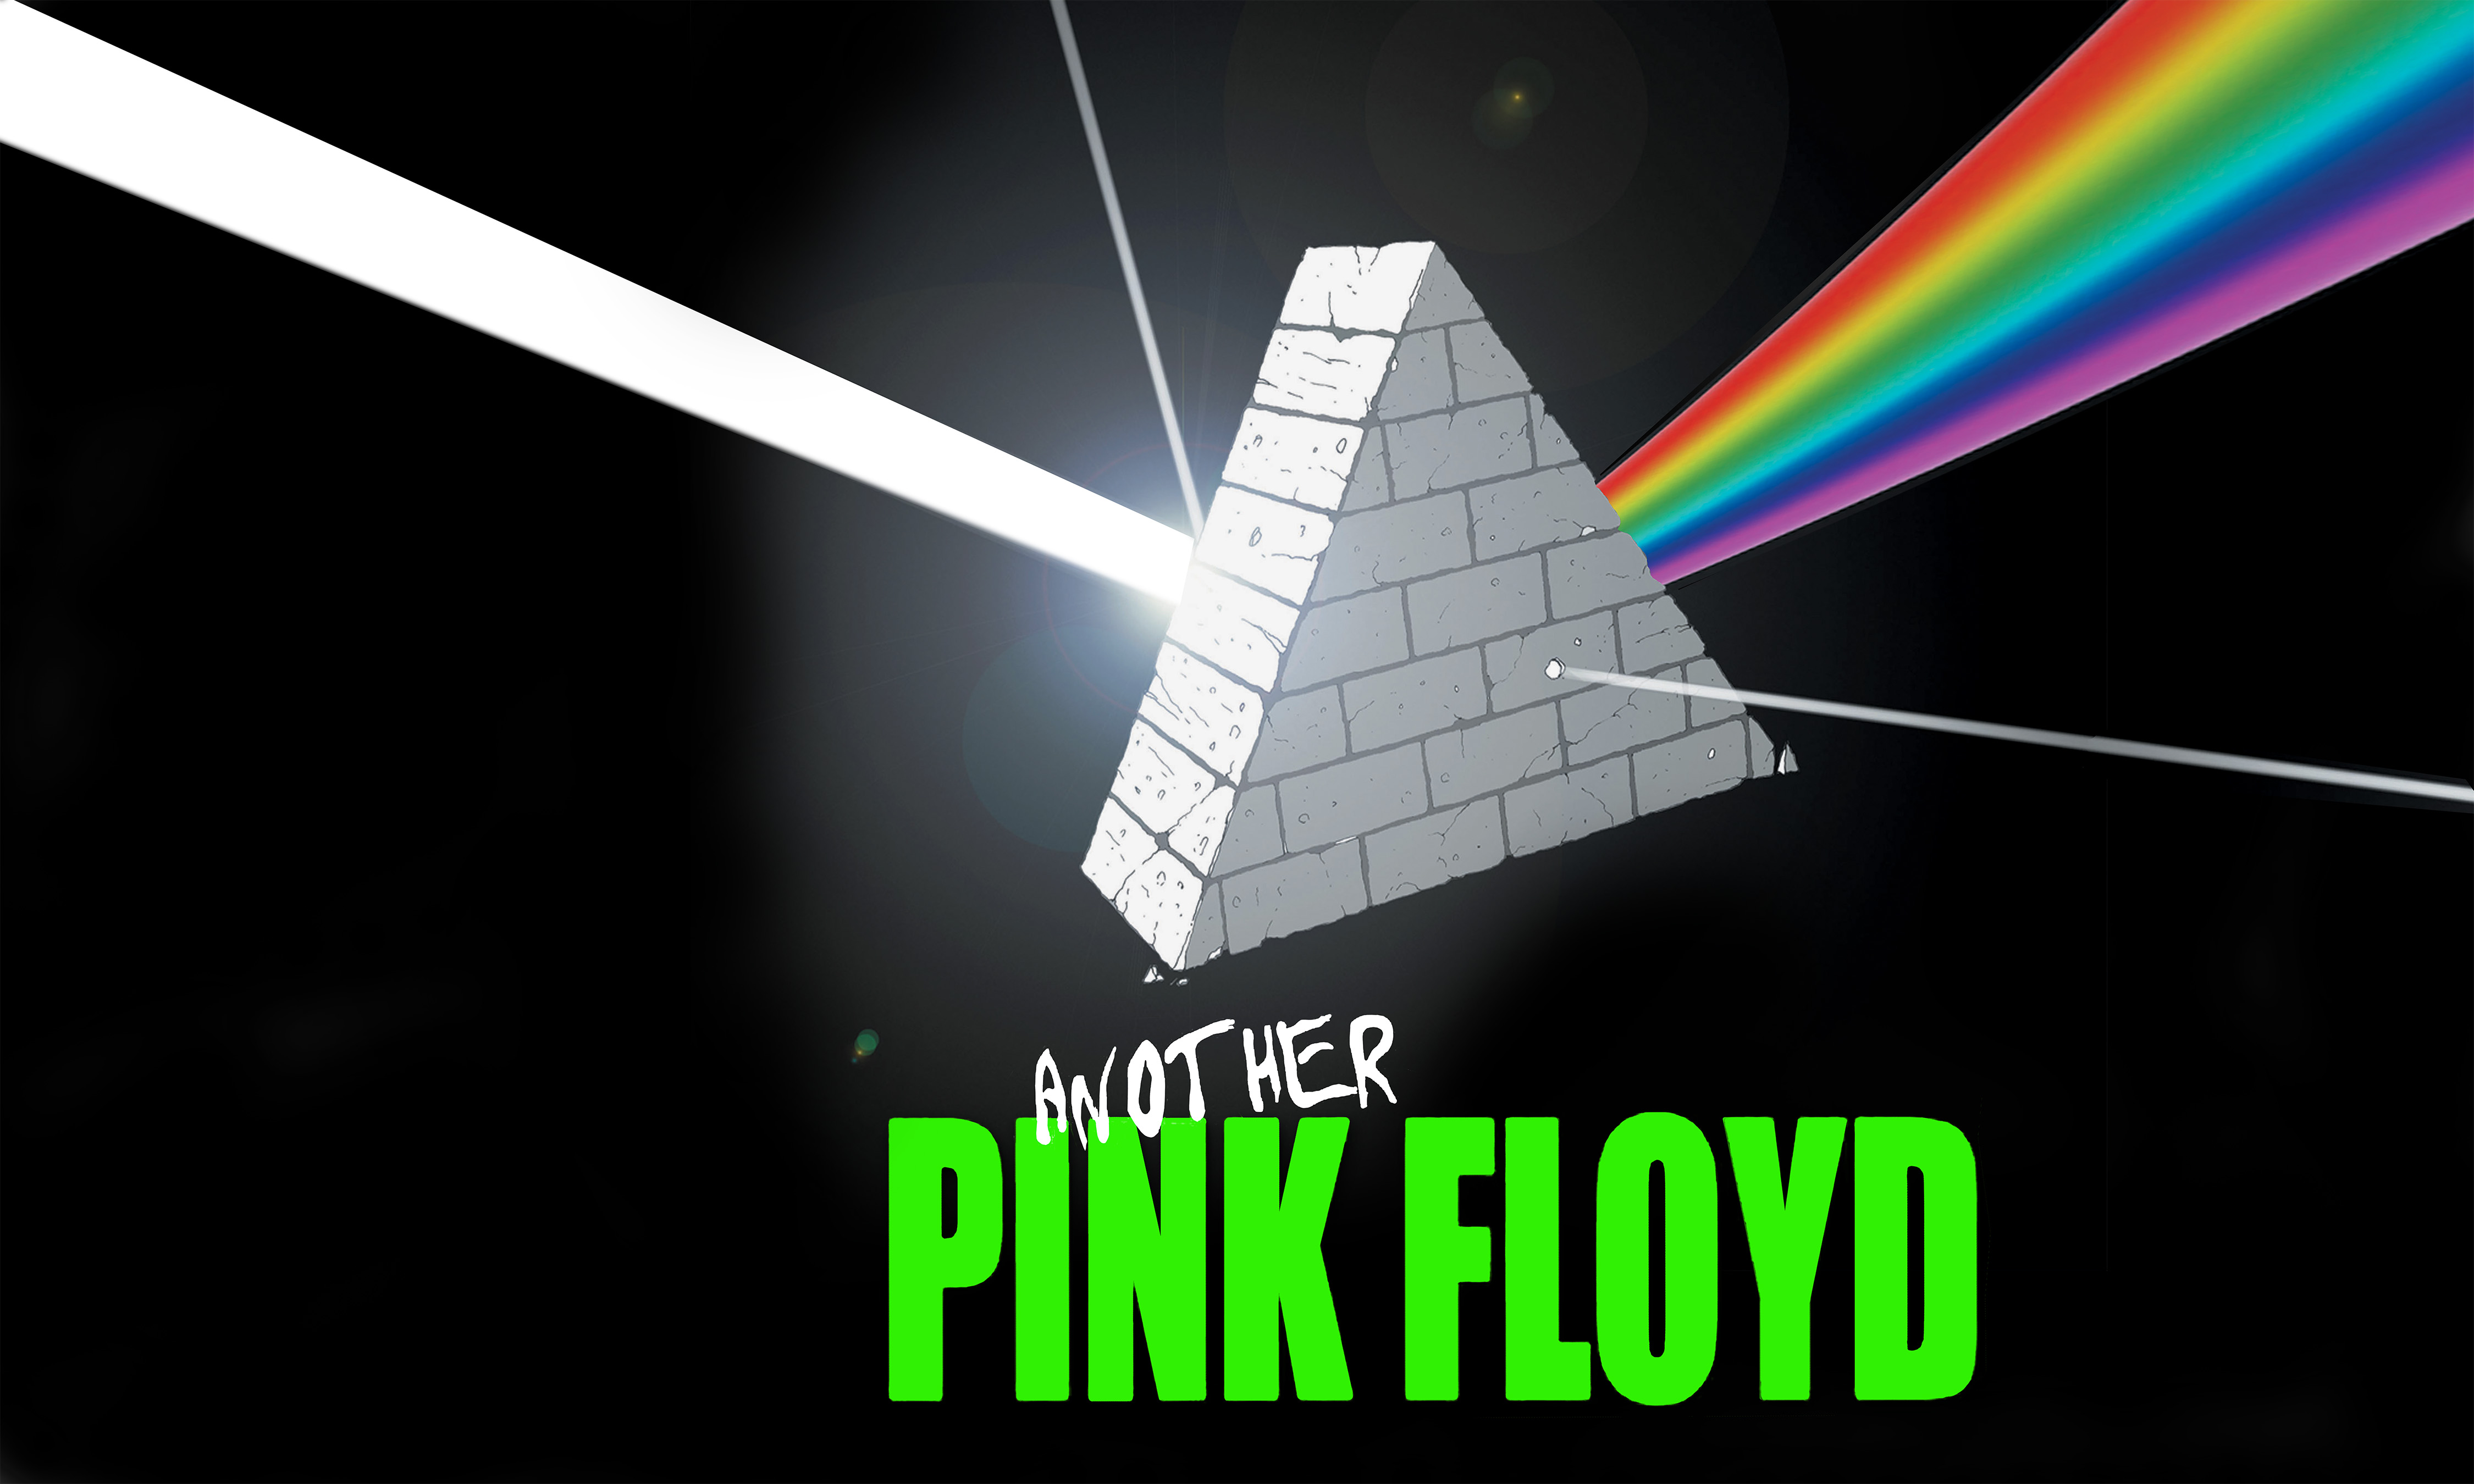 ANOTHER PINK FLOYD